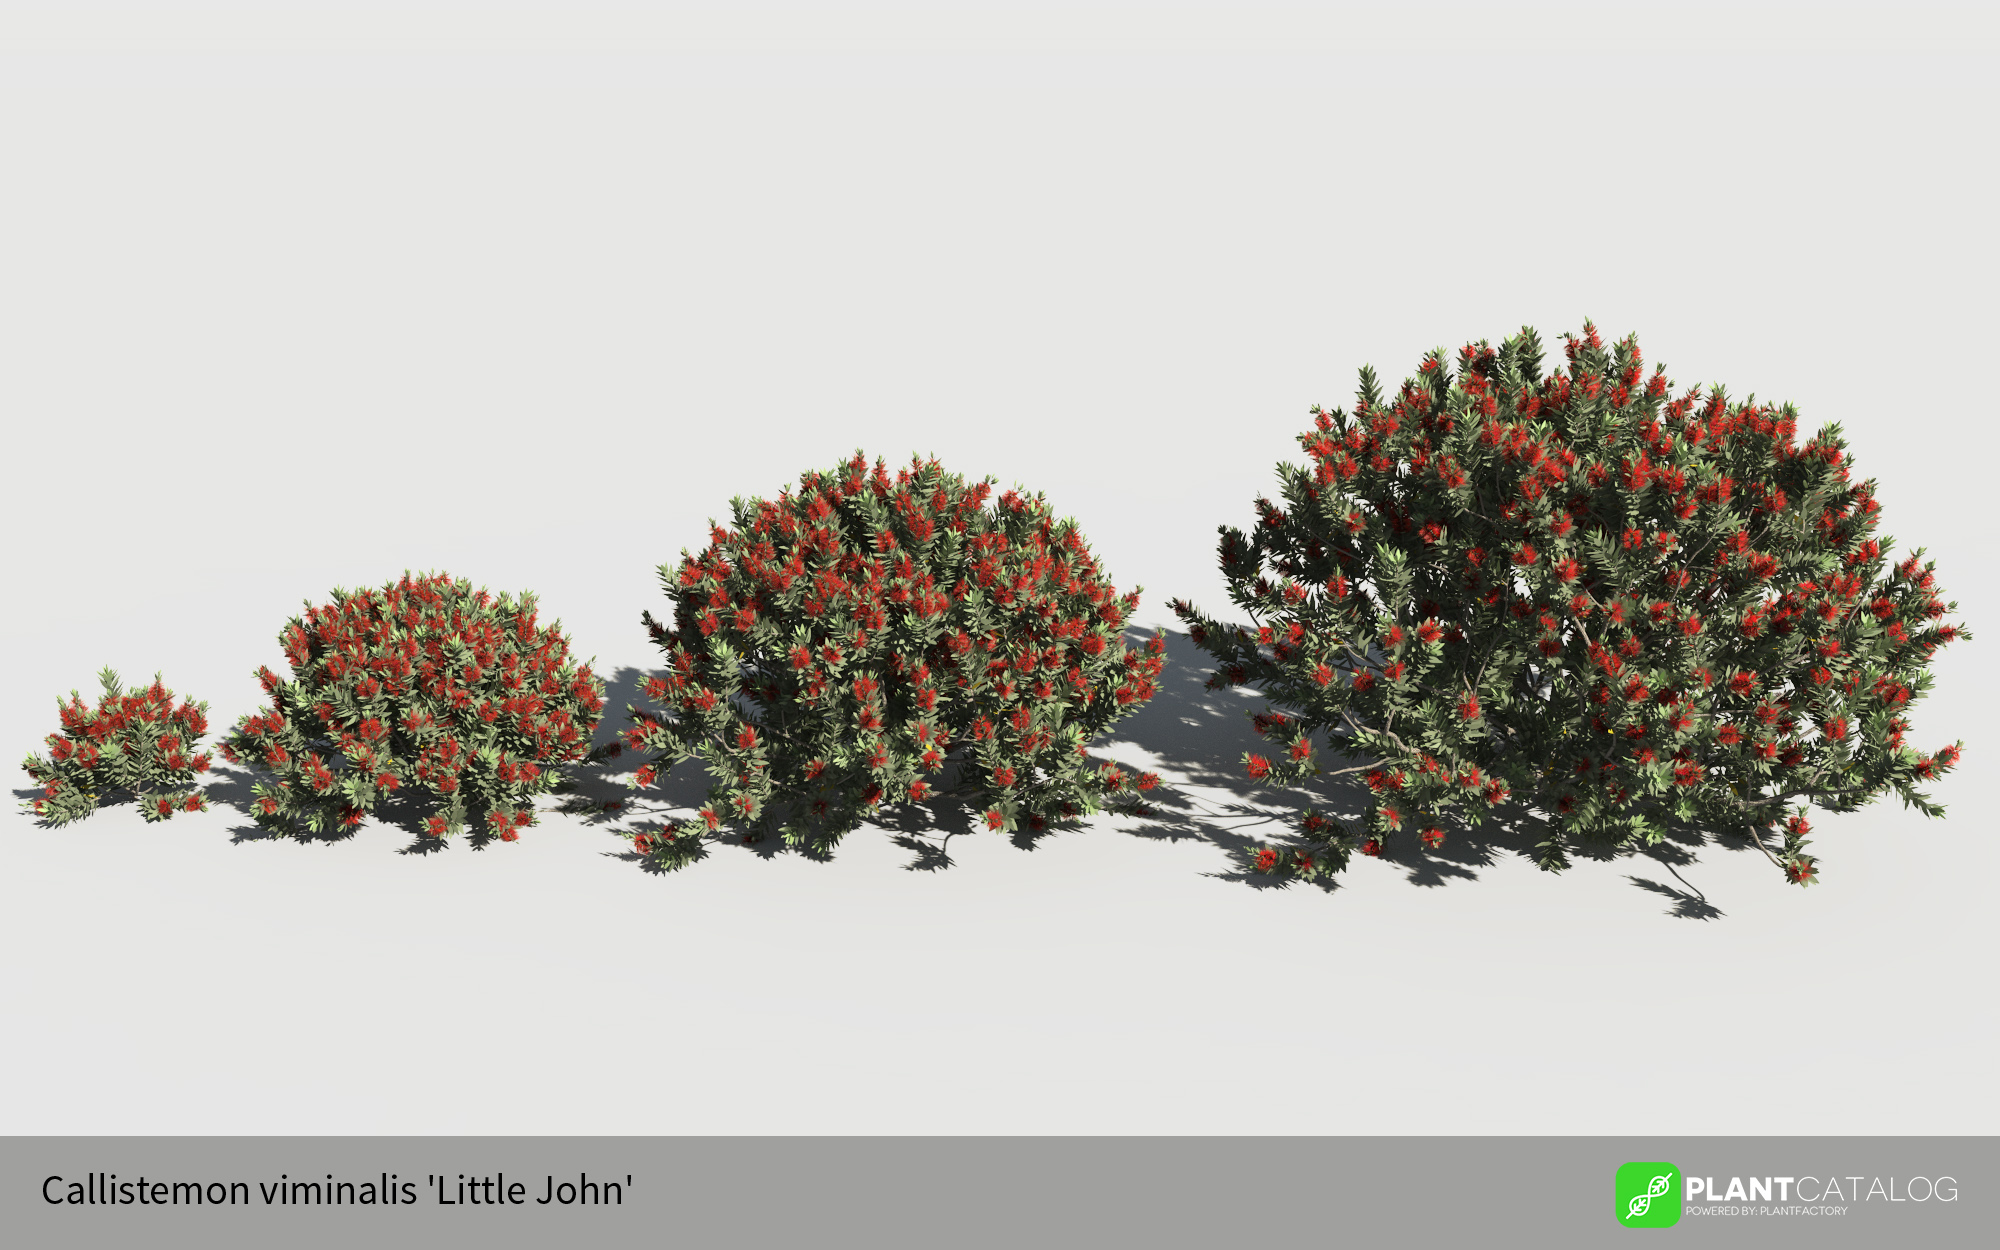 3D model of the Dwarf bottlebrush - Callistemon viminalis 'Little John' - from the PlantCatalog, rendered in VUE